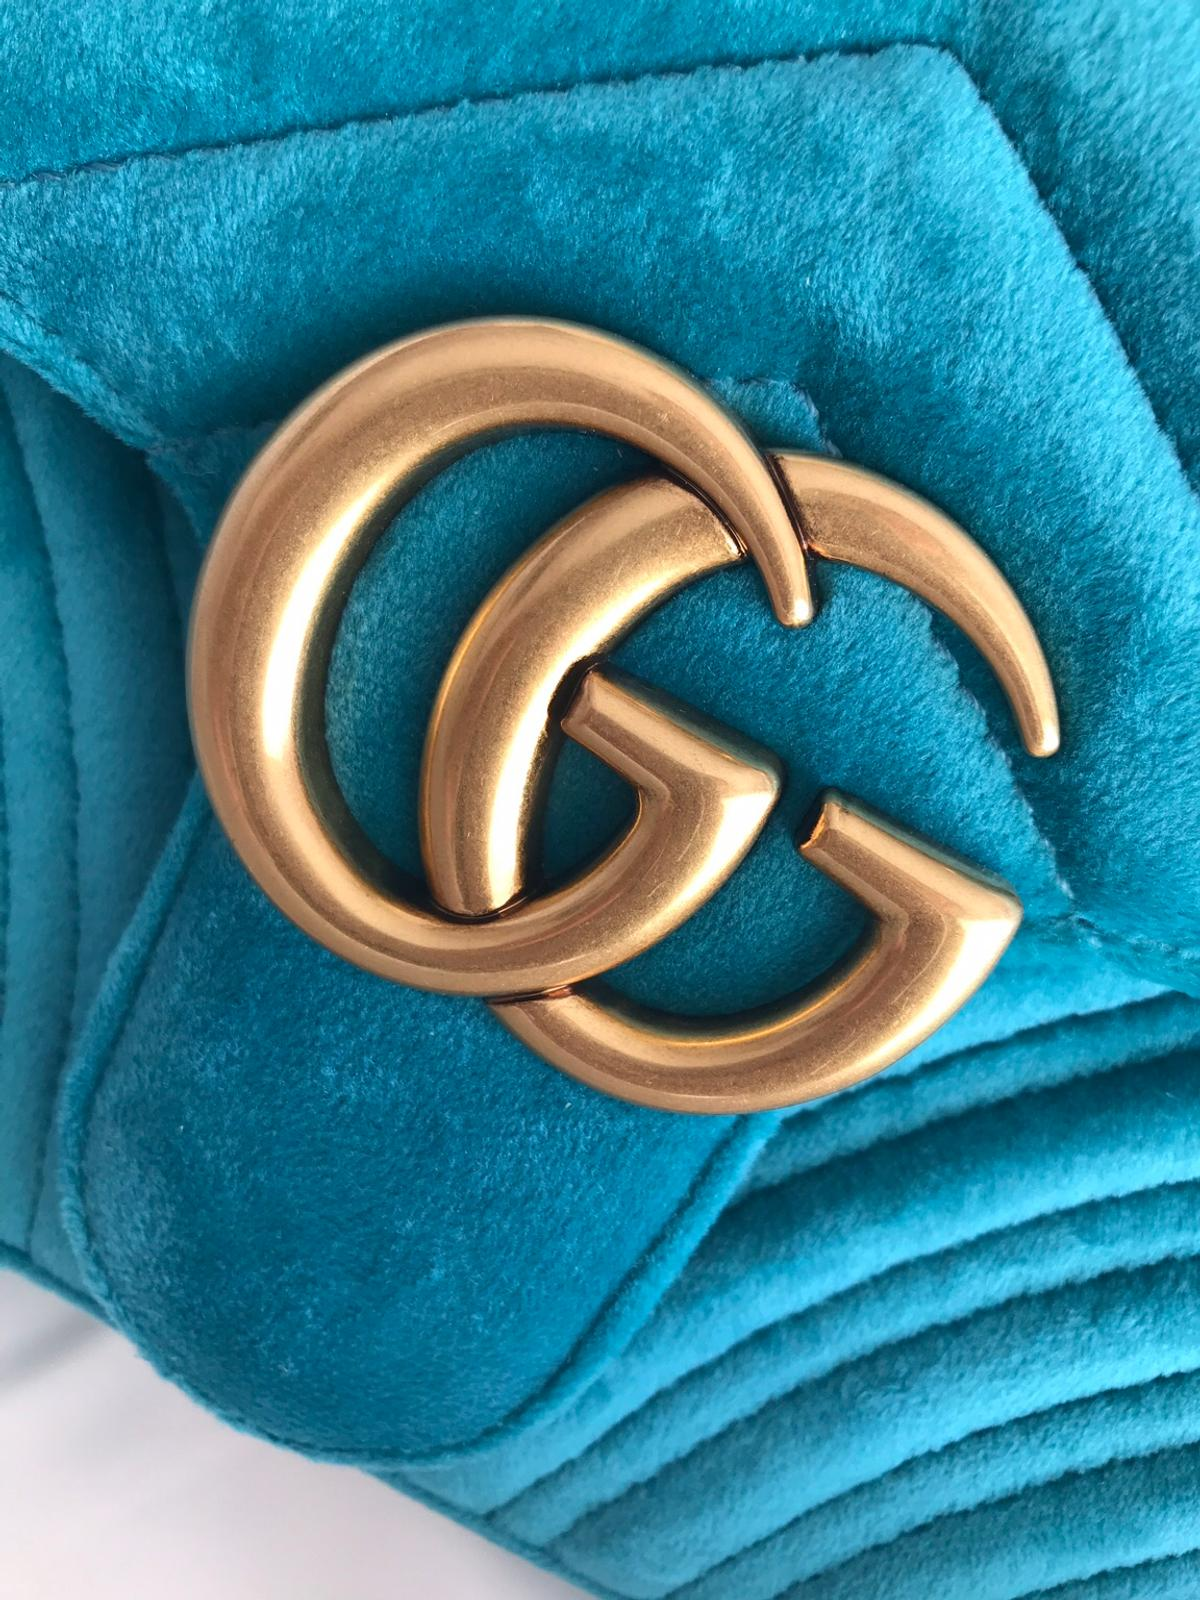 151081b950fe Gucci Velvet Marmont Small Petrol Blue in S60 Rotherham for £750.00 ...